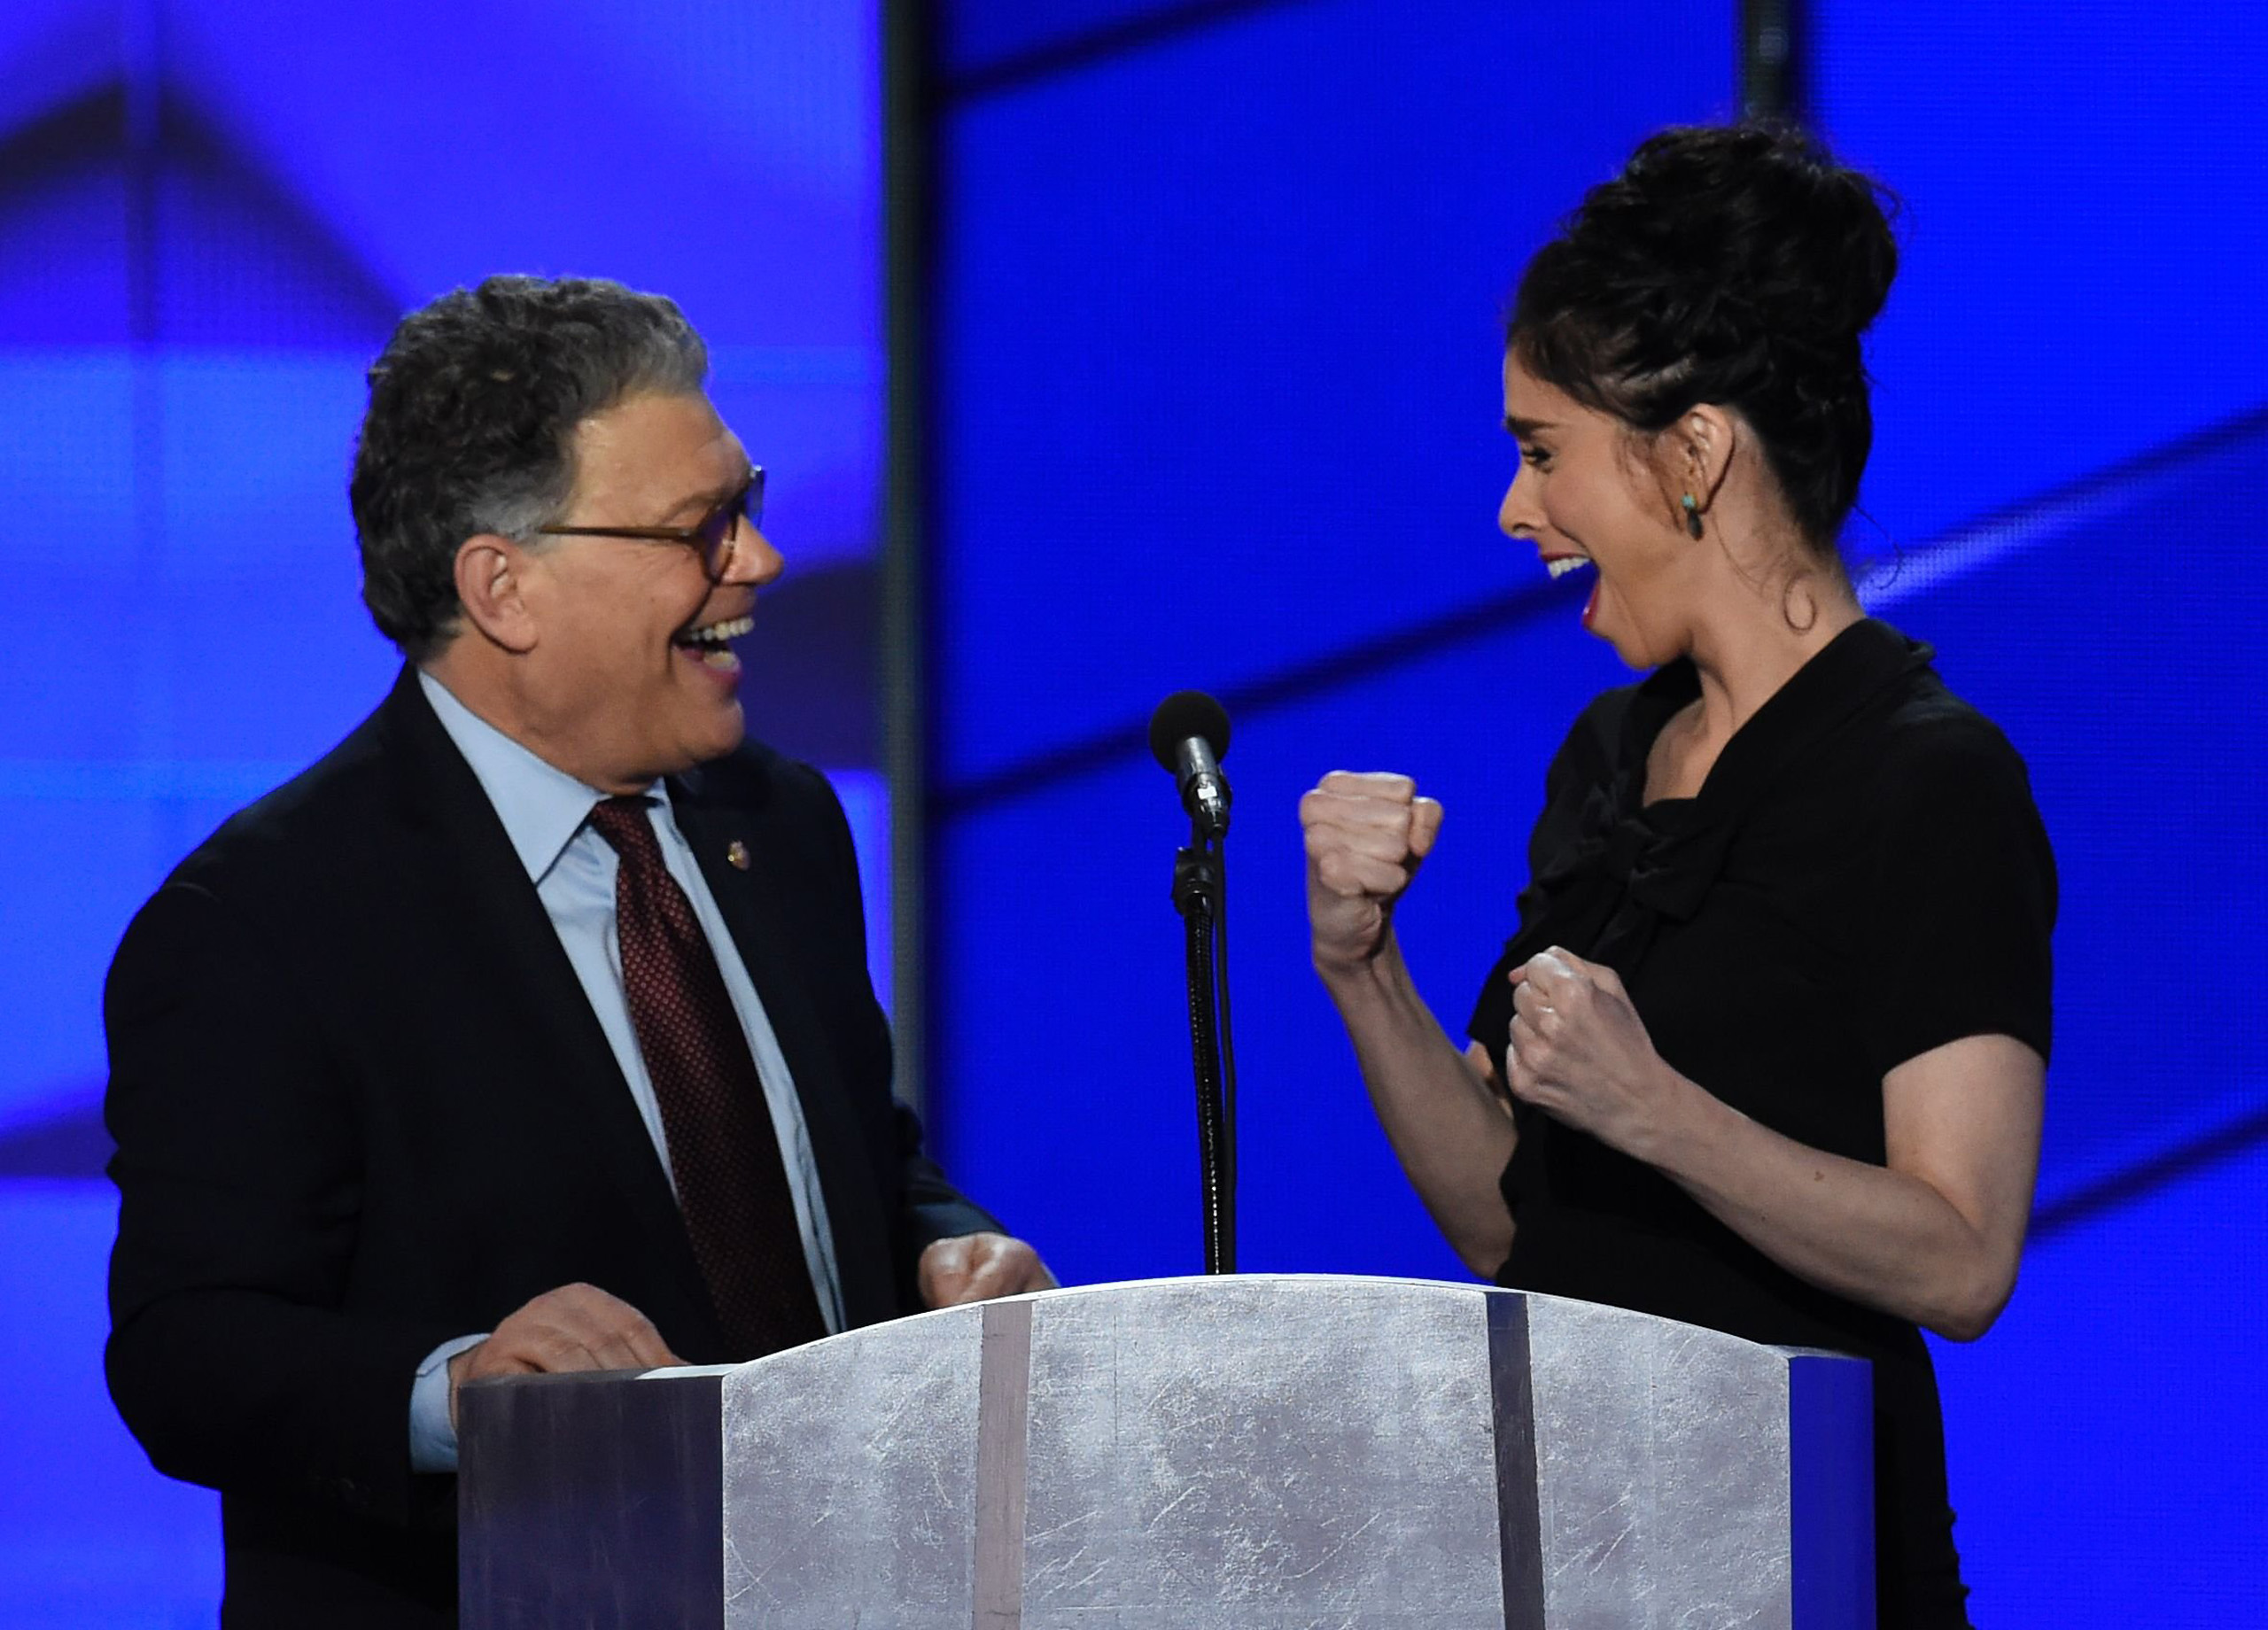 US Senator Al Franken (L) and comedian Sarah Silverman share a moment during Day 1 of the Democratic National Convention at the Wells Fargo Center in Philadelphia on July 25, 2016.